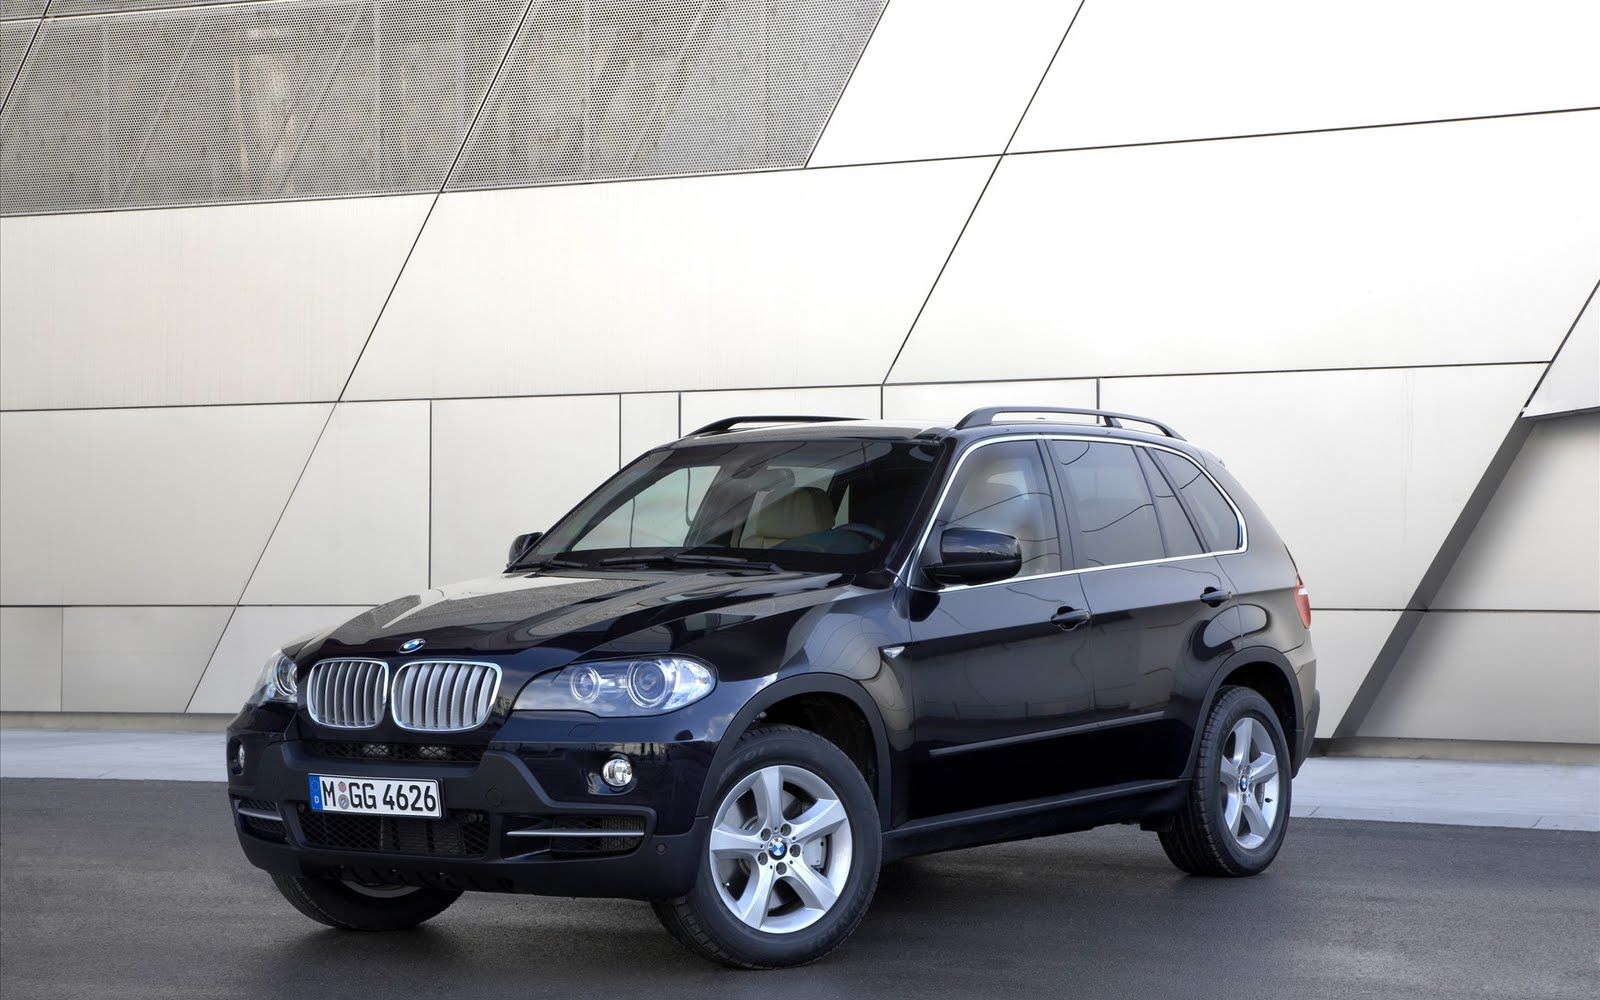 2009 BMW X5 Security Plus ~ CAR REPORT